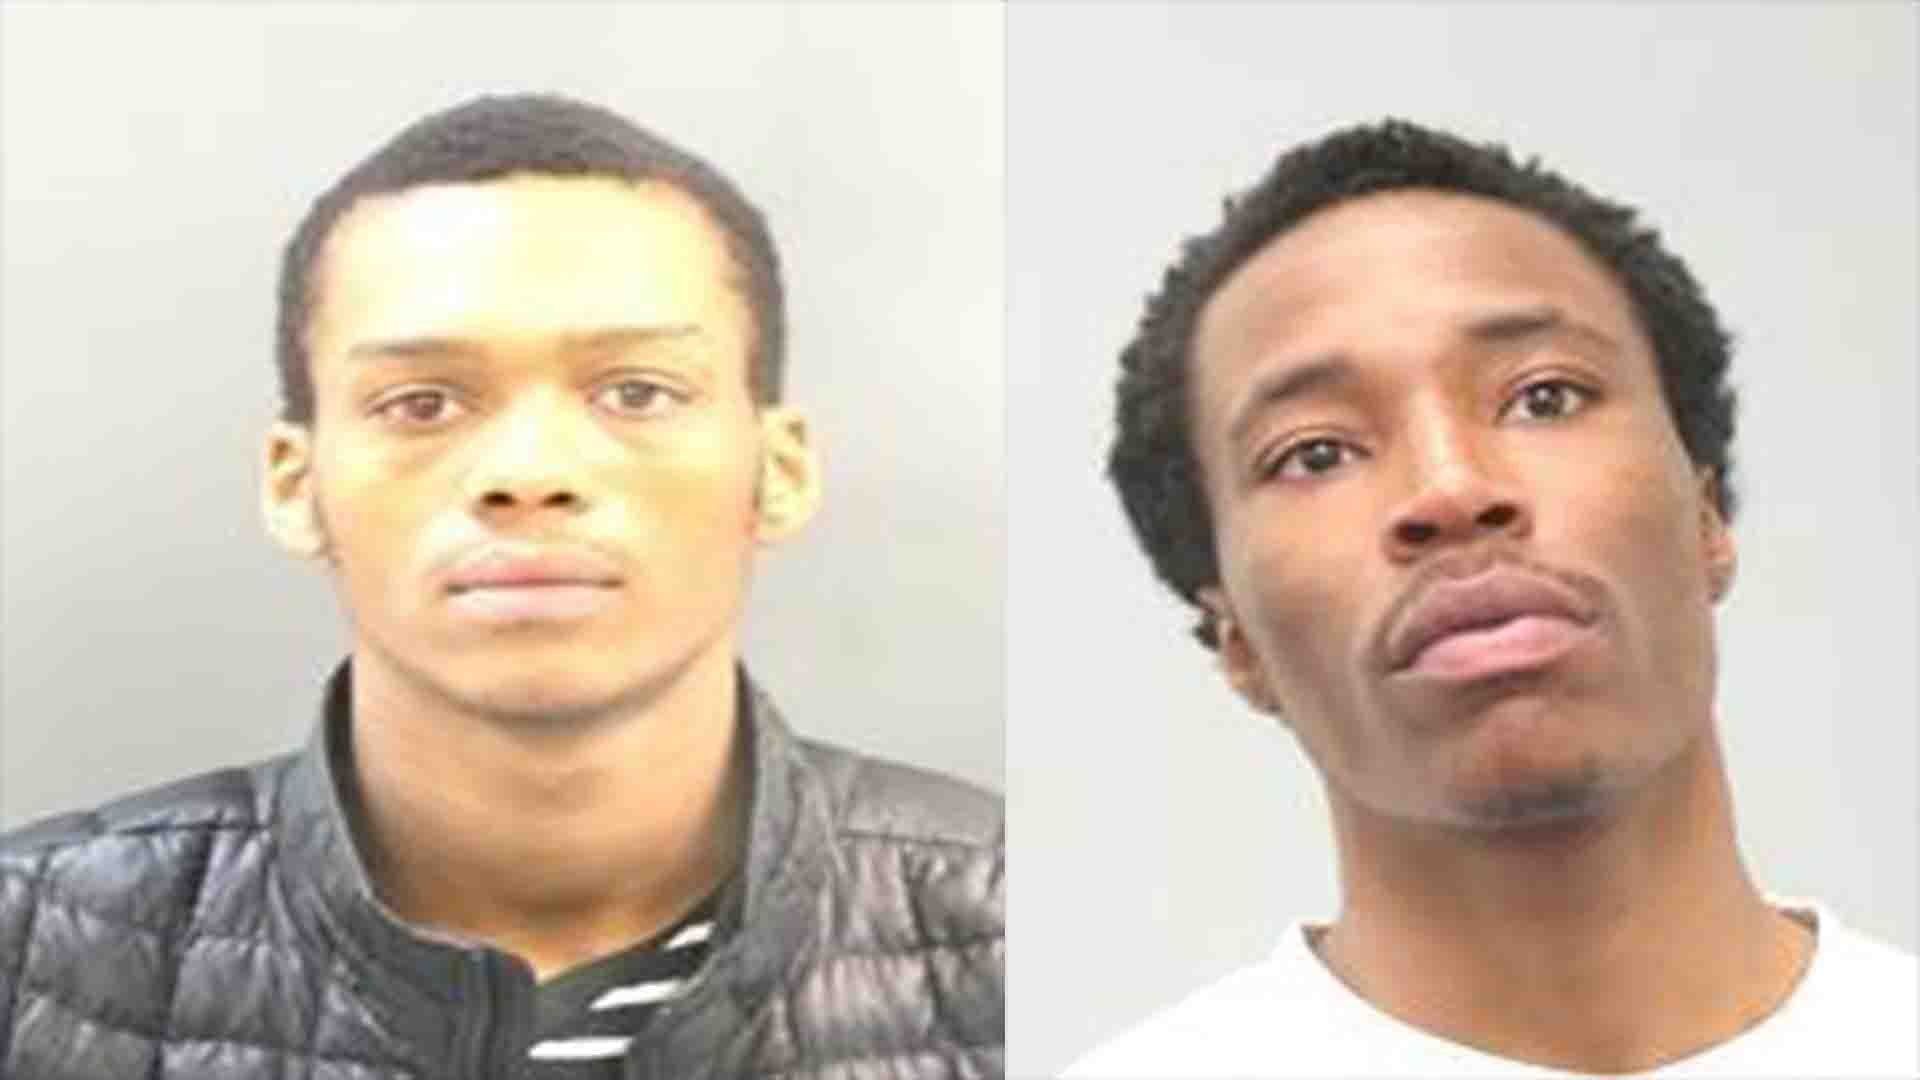 Demond Wilson, 19, and Jesse Boone, 21, are charged with robbery 2nd.